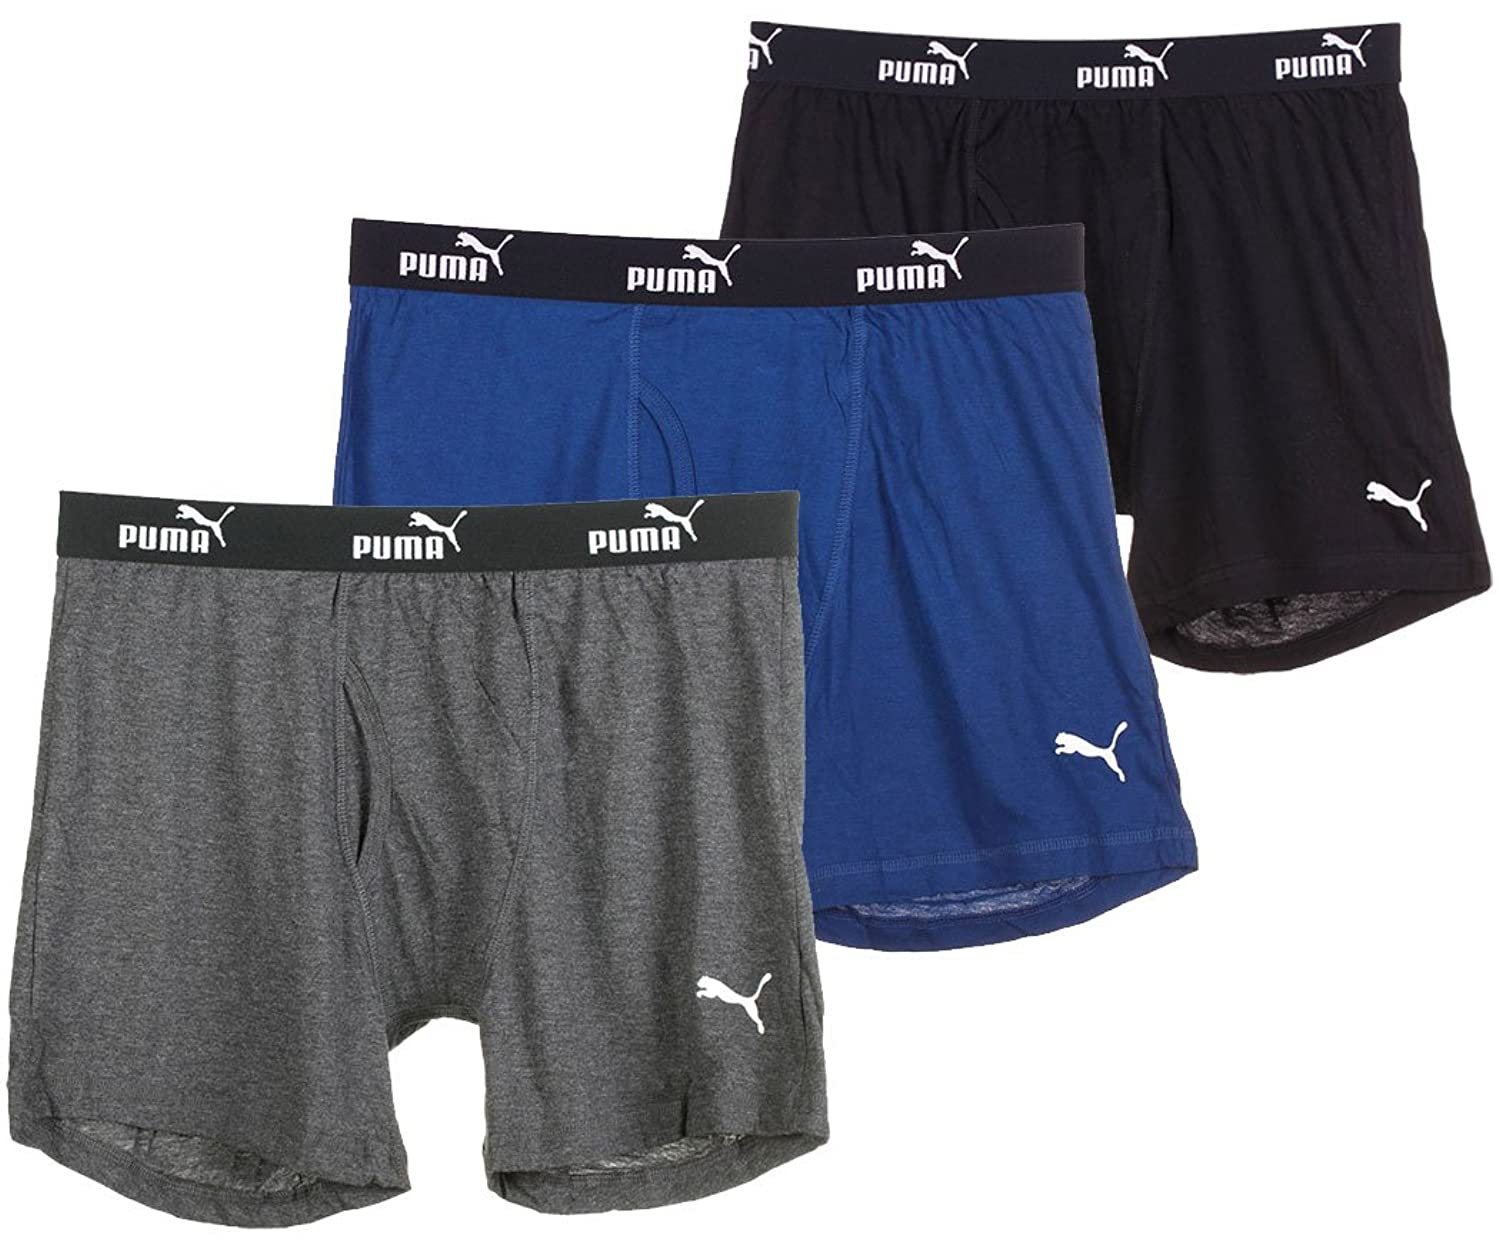 Image result for boxer briefs